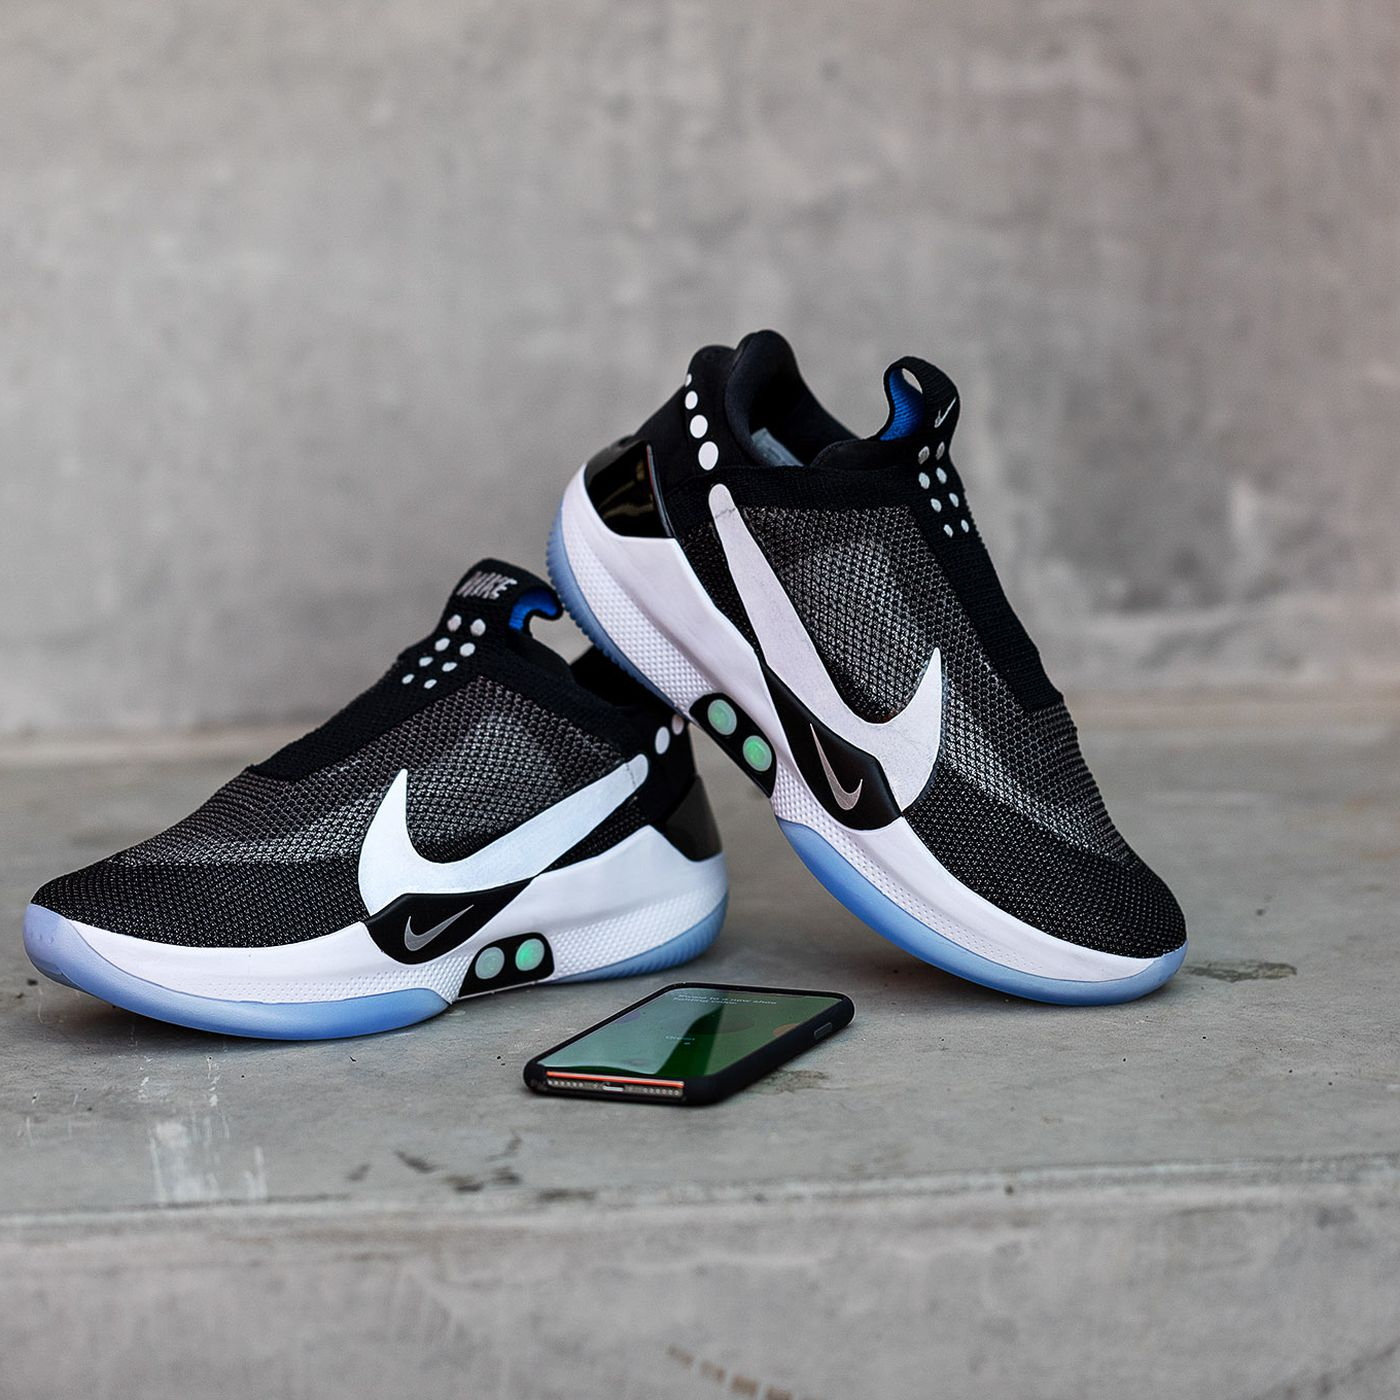 Nike s Adapt BB self-lacing sneakers let you tie your shoes from an app -  The Verge 9197fb8cd